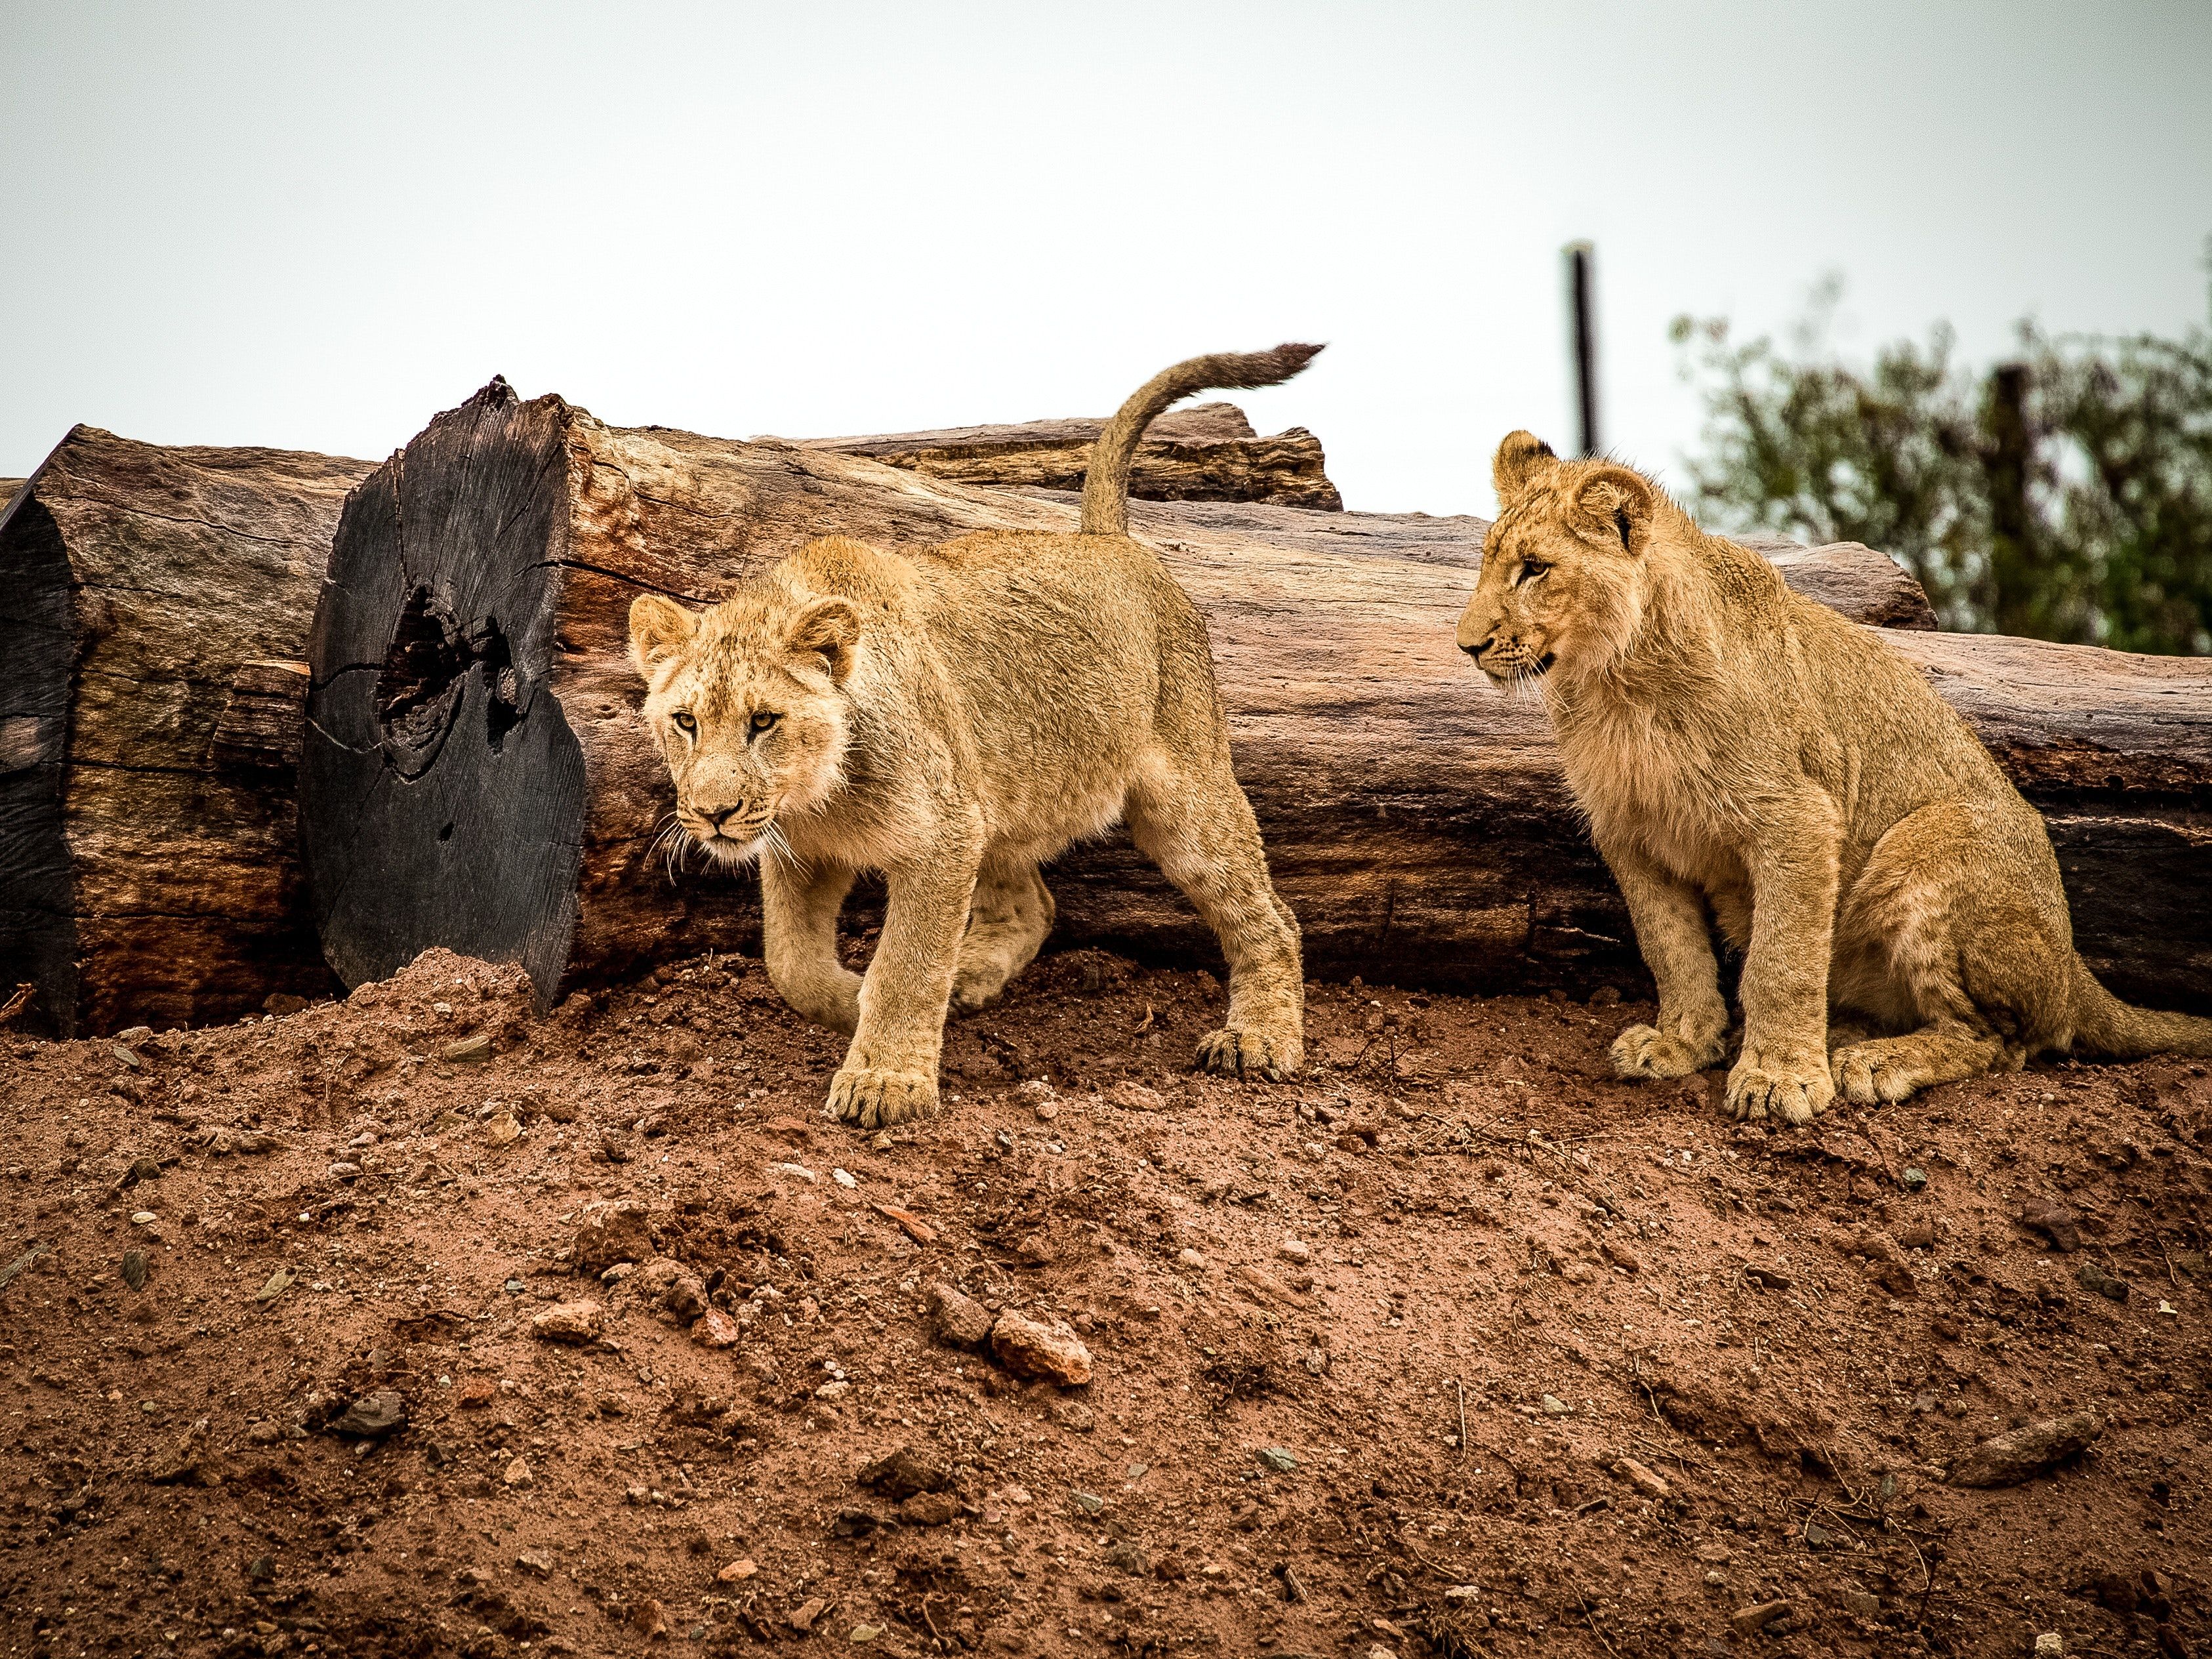 Lioness beside wood trunk during daytime photo